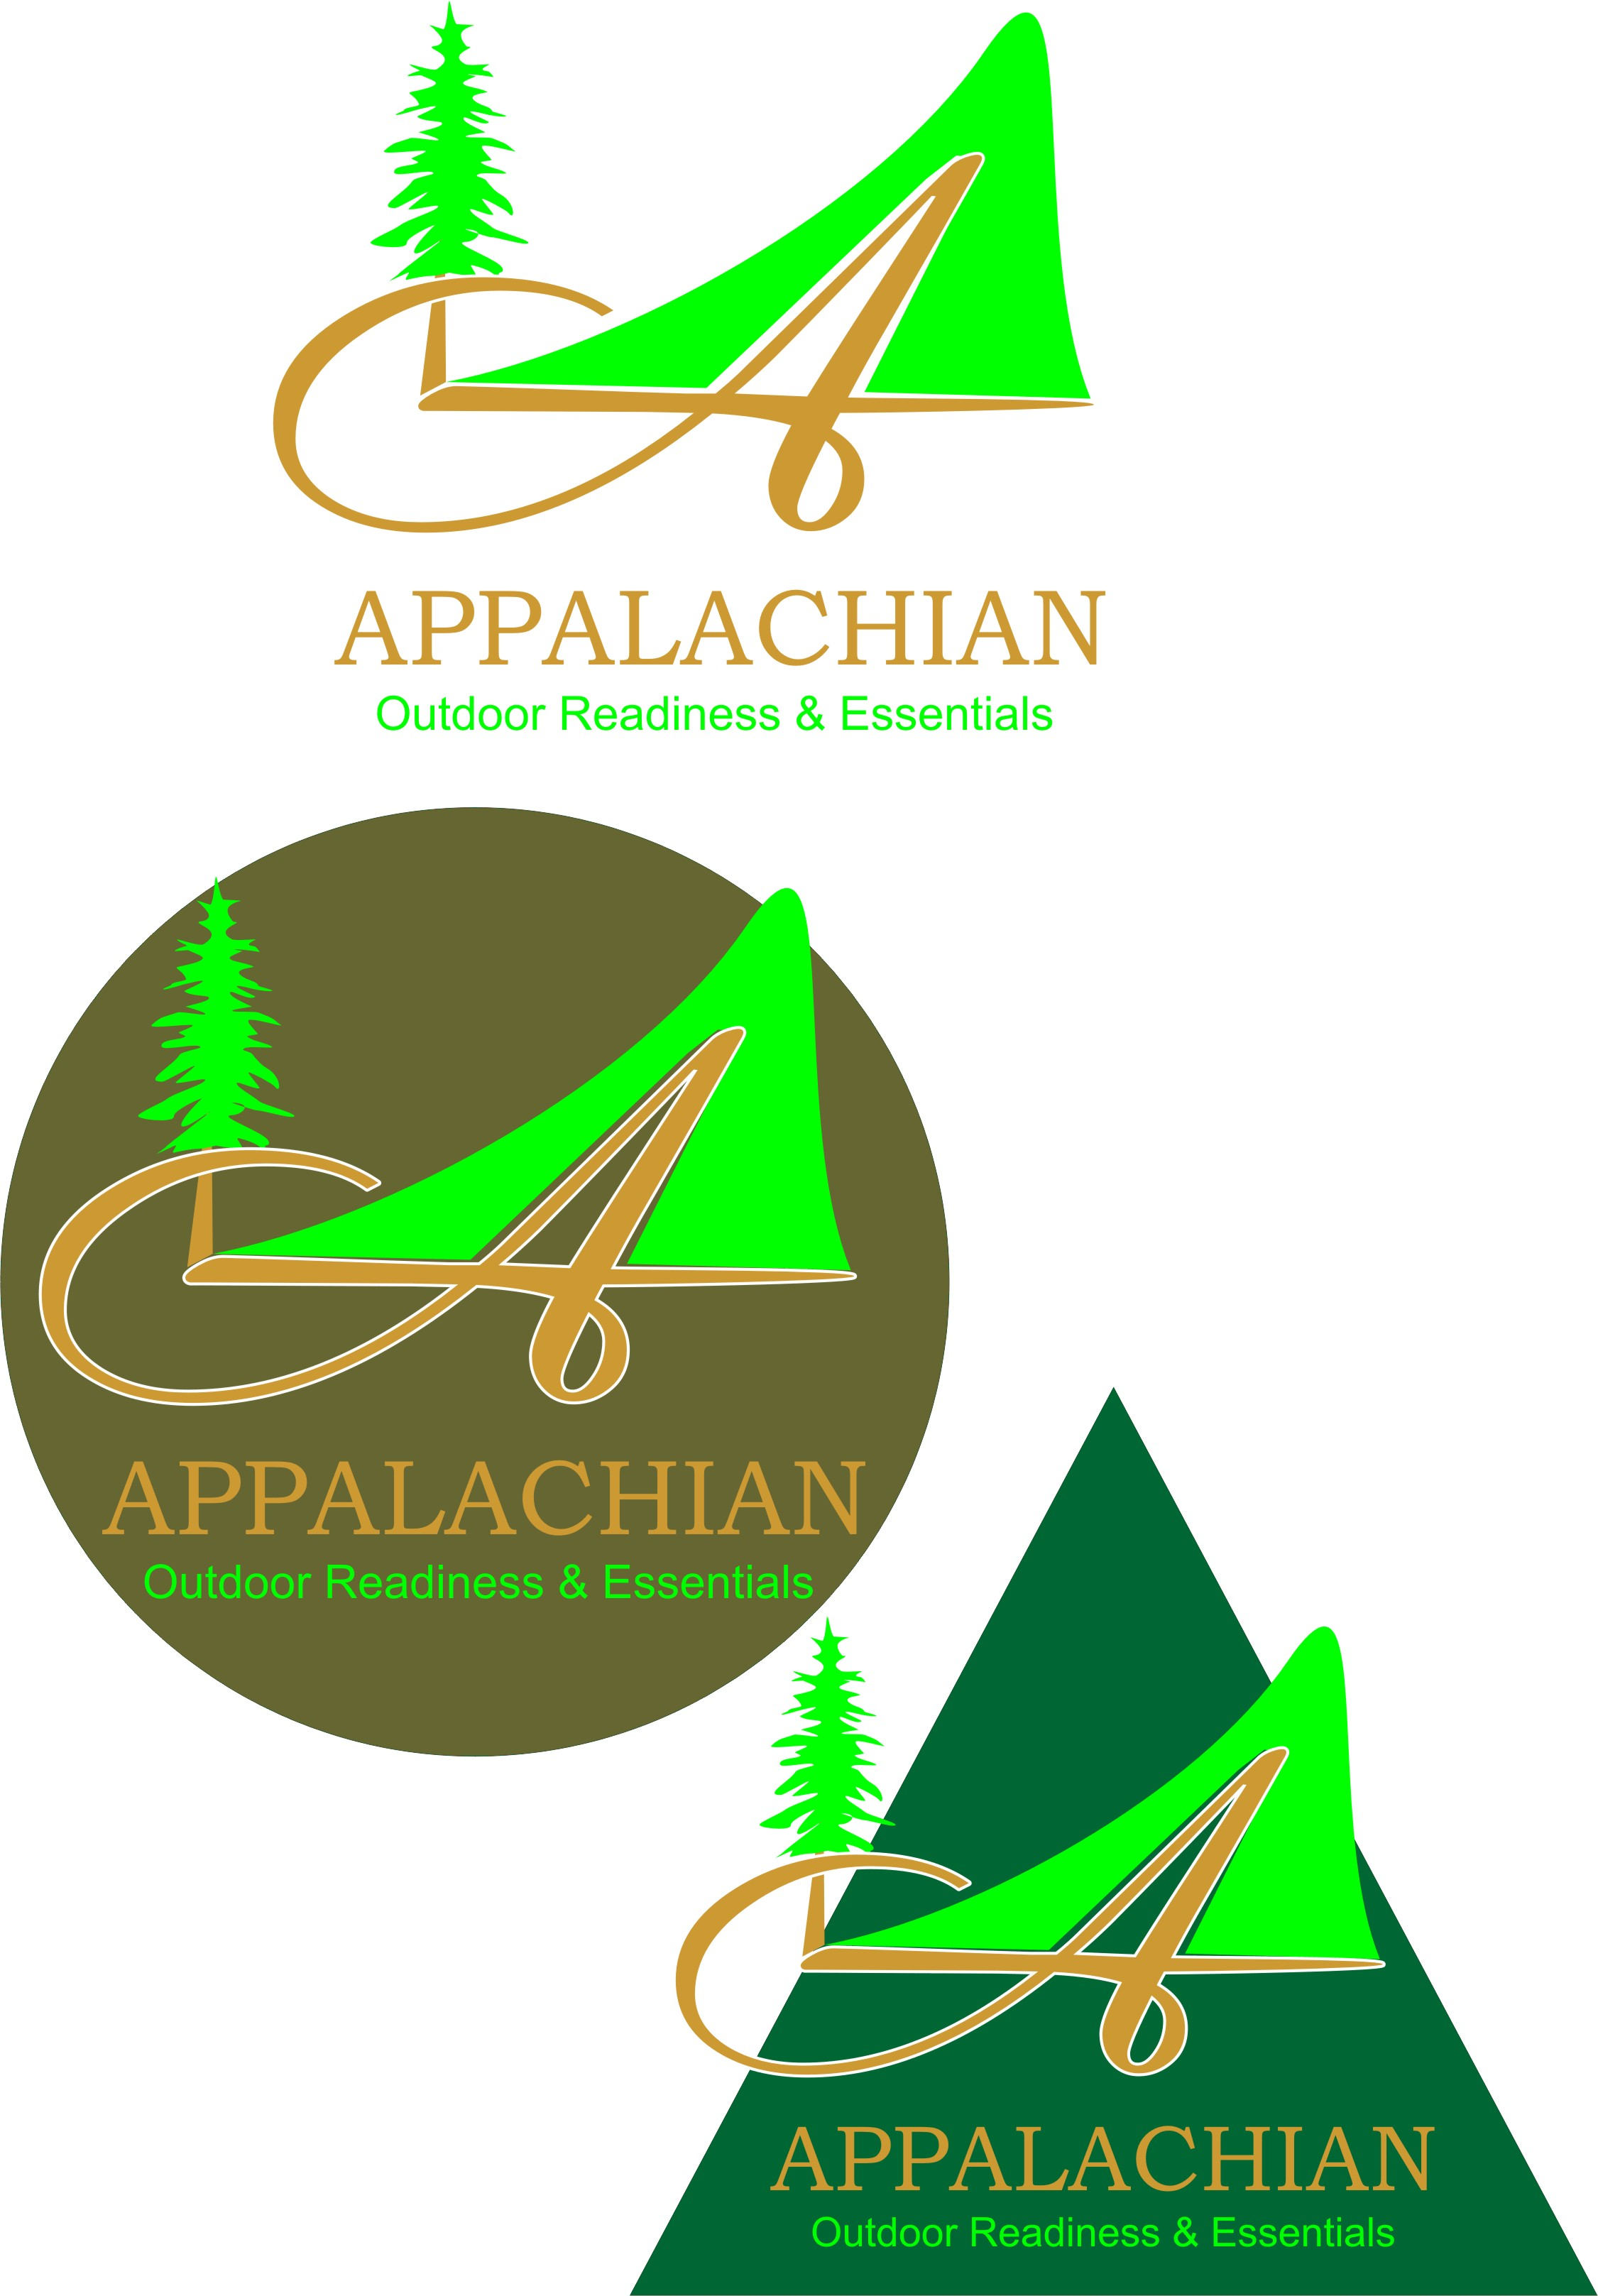 Logo Design by Korsunov Oleg - Entry No. 20 in the Logo Design Contest Imaginative Logo Design for Appalachian Outdoor Readiness & Essentials.